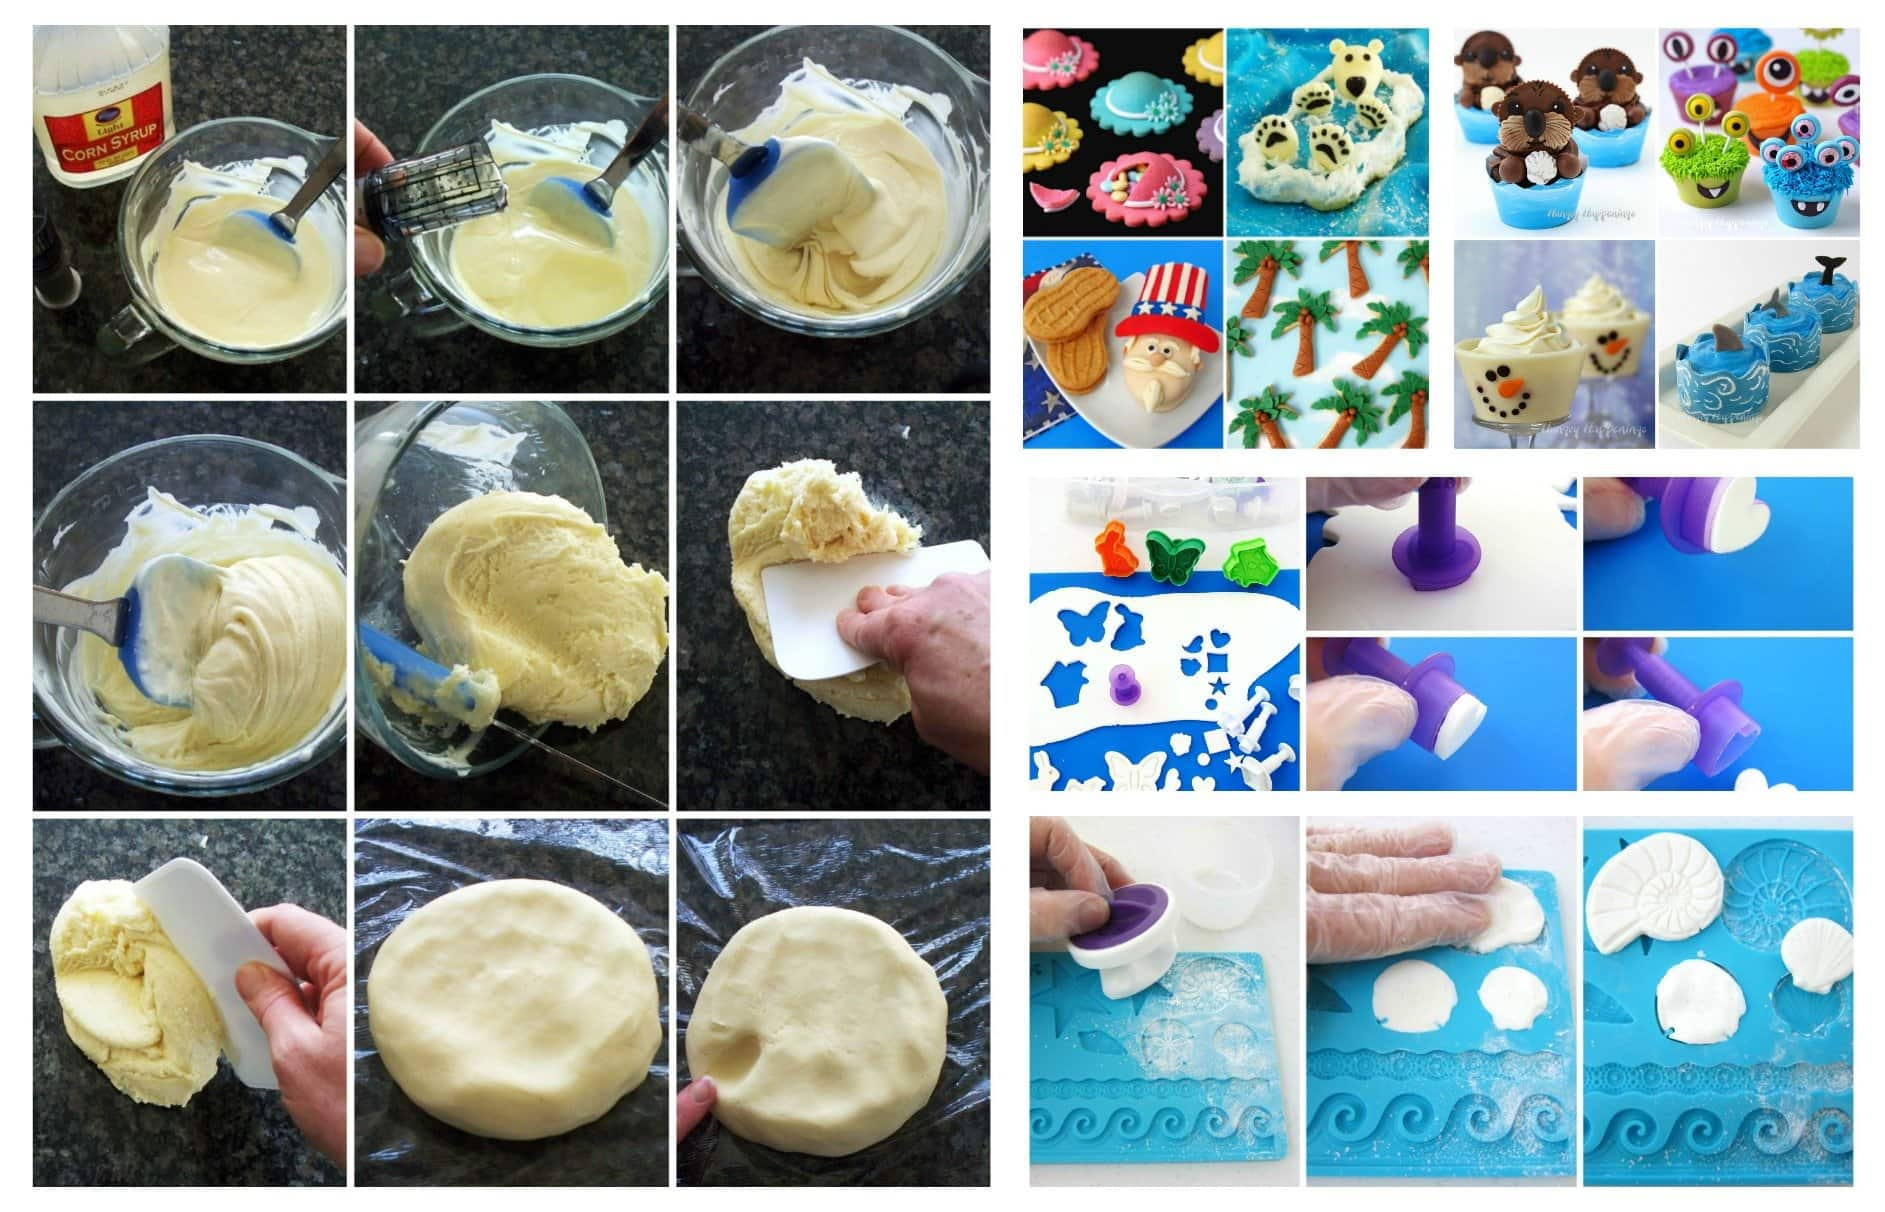 Learn how to make and decorate with candy clay in the new book, Candy Clay Creations.